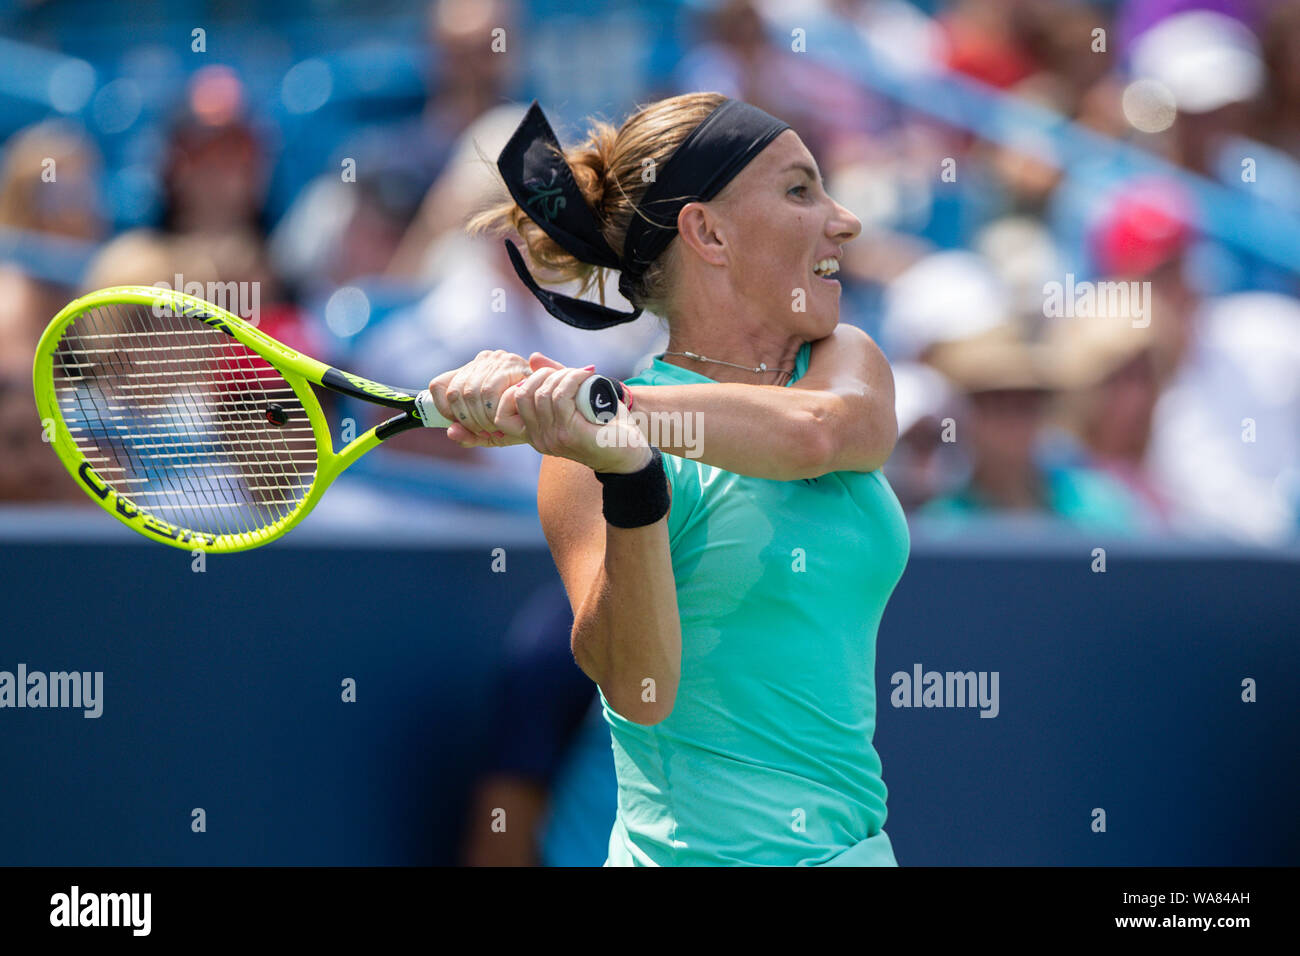 August 18, 2019, Mason, Ohio, USA: Svetlana Kuznetsova (RUS) in action during the Women's Final of the Western and Southern Open at the Lindner Family Tennis Center, Mason, Oh. (Credit Image: © Scott Stuart/ZUMA Wire) Stock Photo